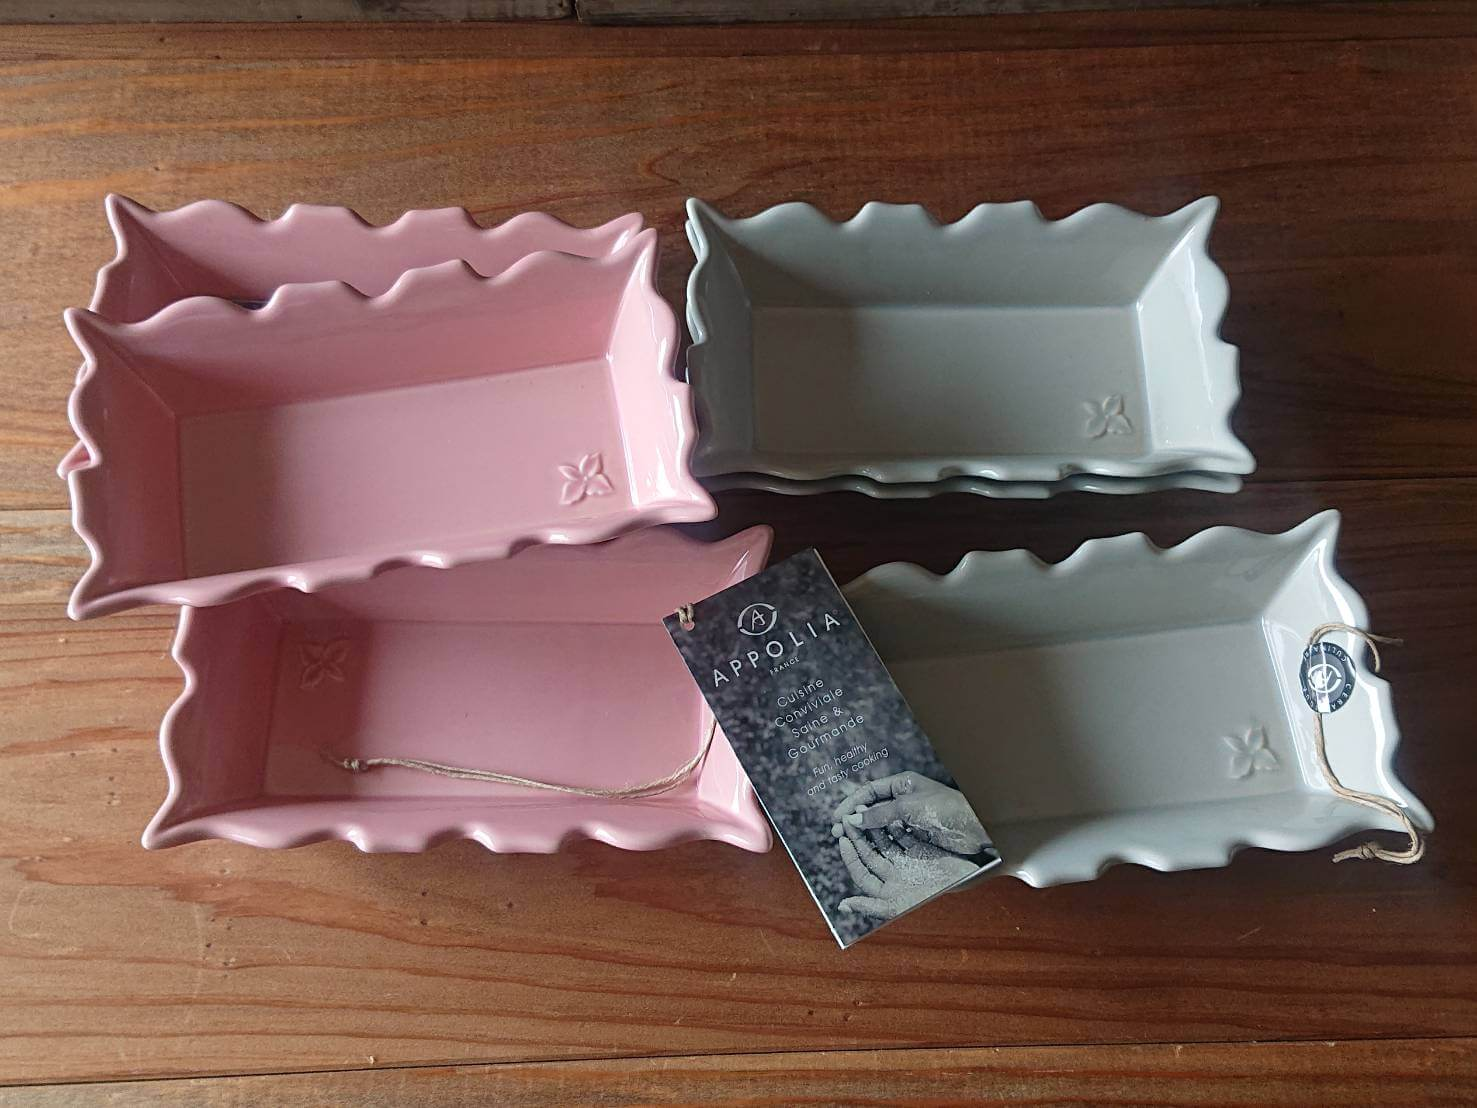 APPOLIA SNACK DISH PINK&GRAY